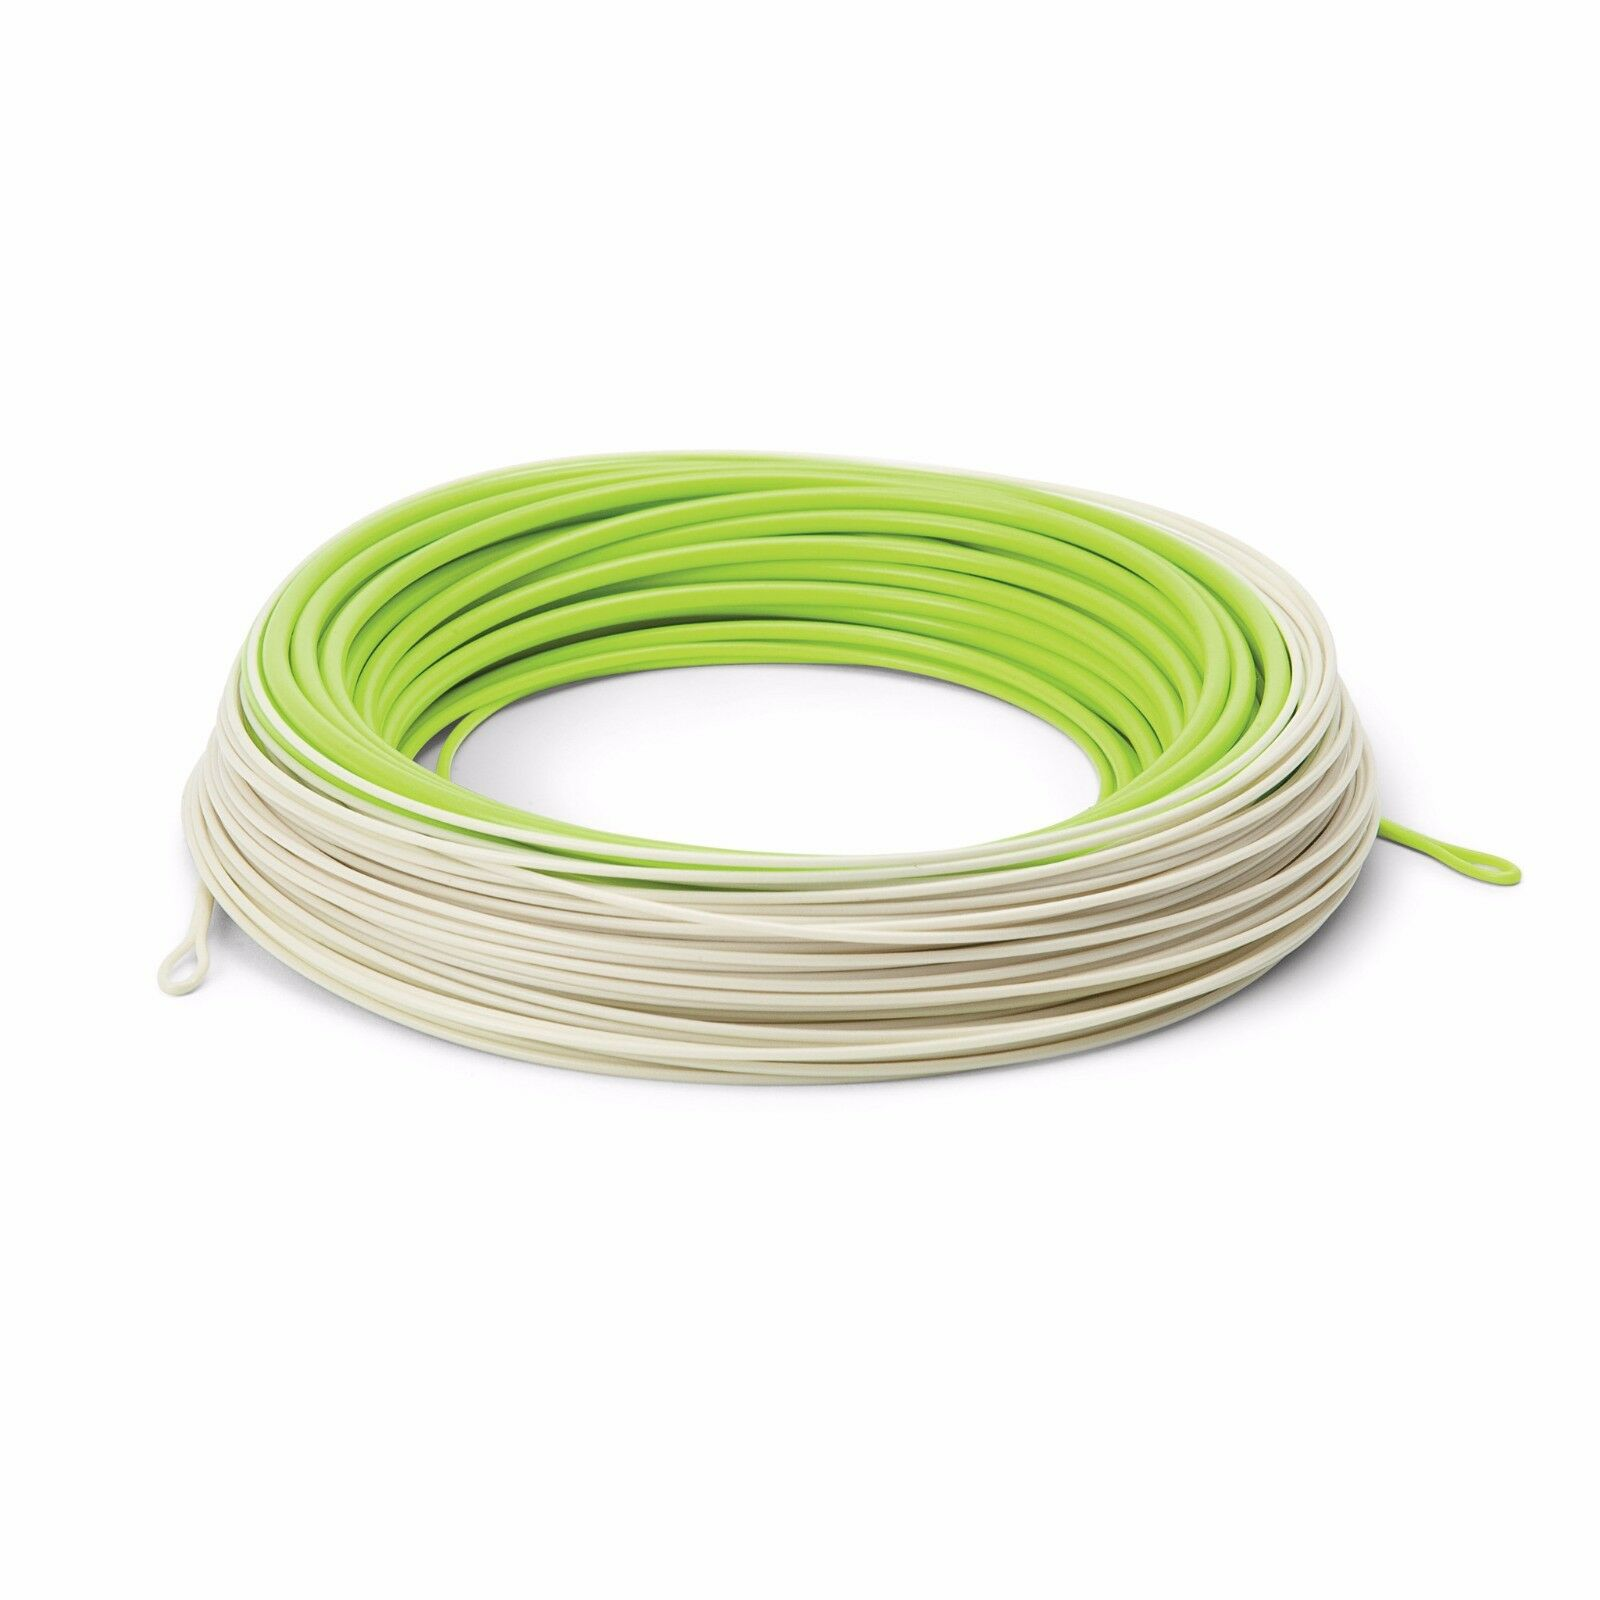 Cortland troutboss HTX Floating Fly Line-Fly Line-wf6